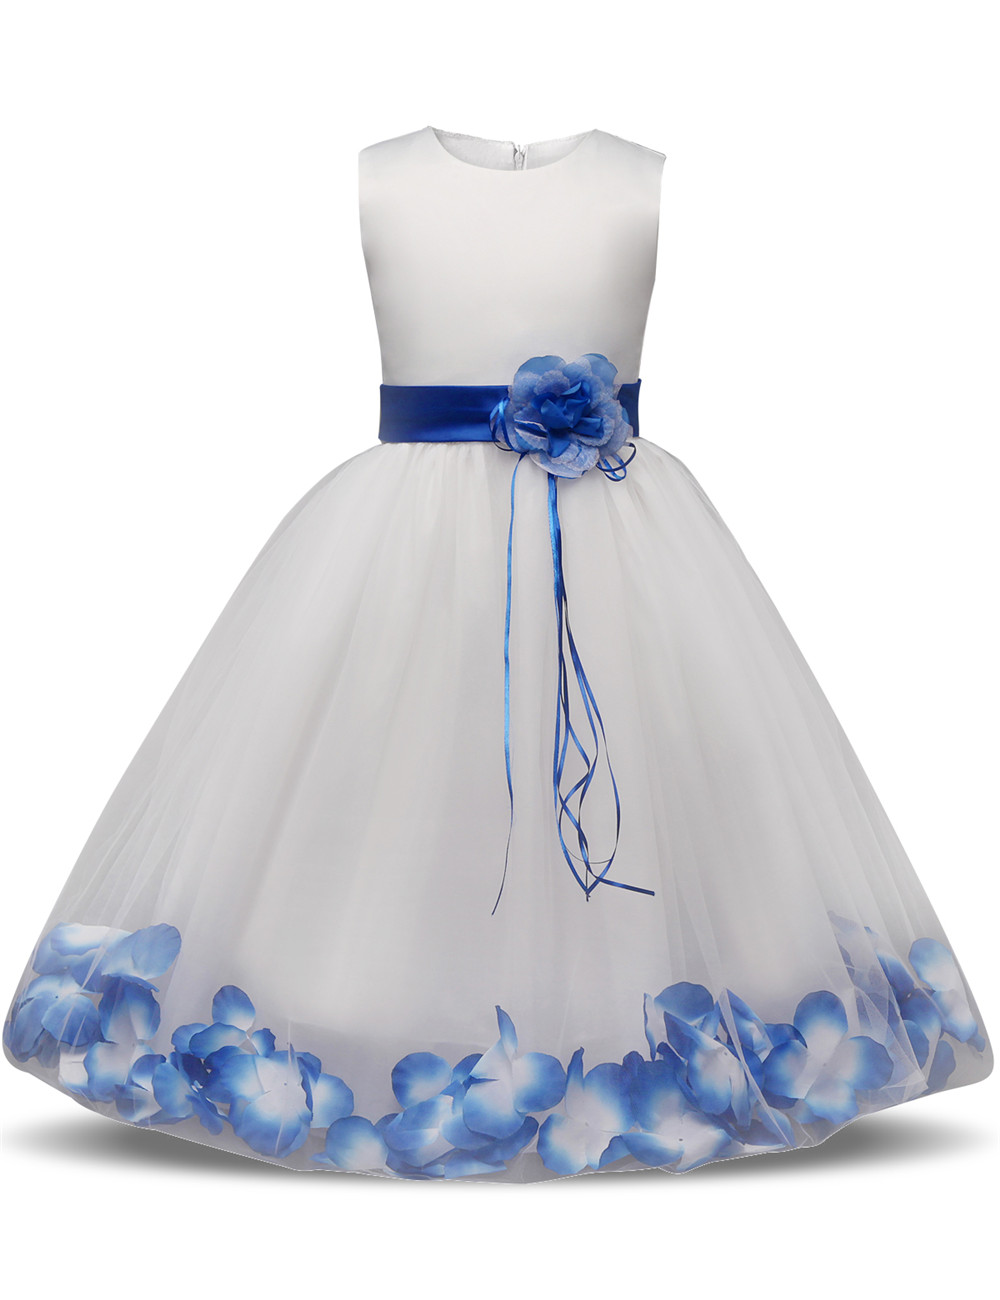 Fairy bridesmaid dresses reviews online shopping fairy fairy petals teen girl dress children ceremony party evening dress girls prom gowns kids tulle tutu dresses for girls frocks 10t ombrellifo Image collections